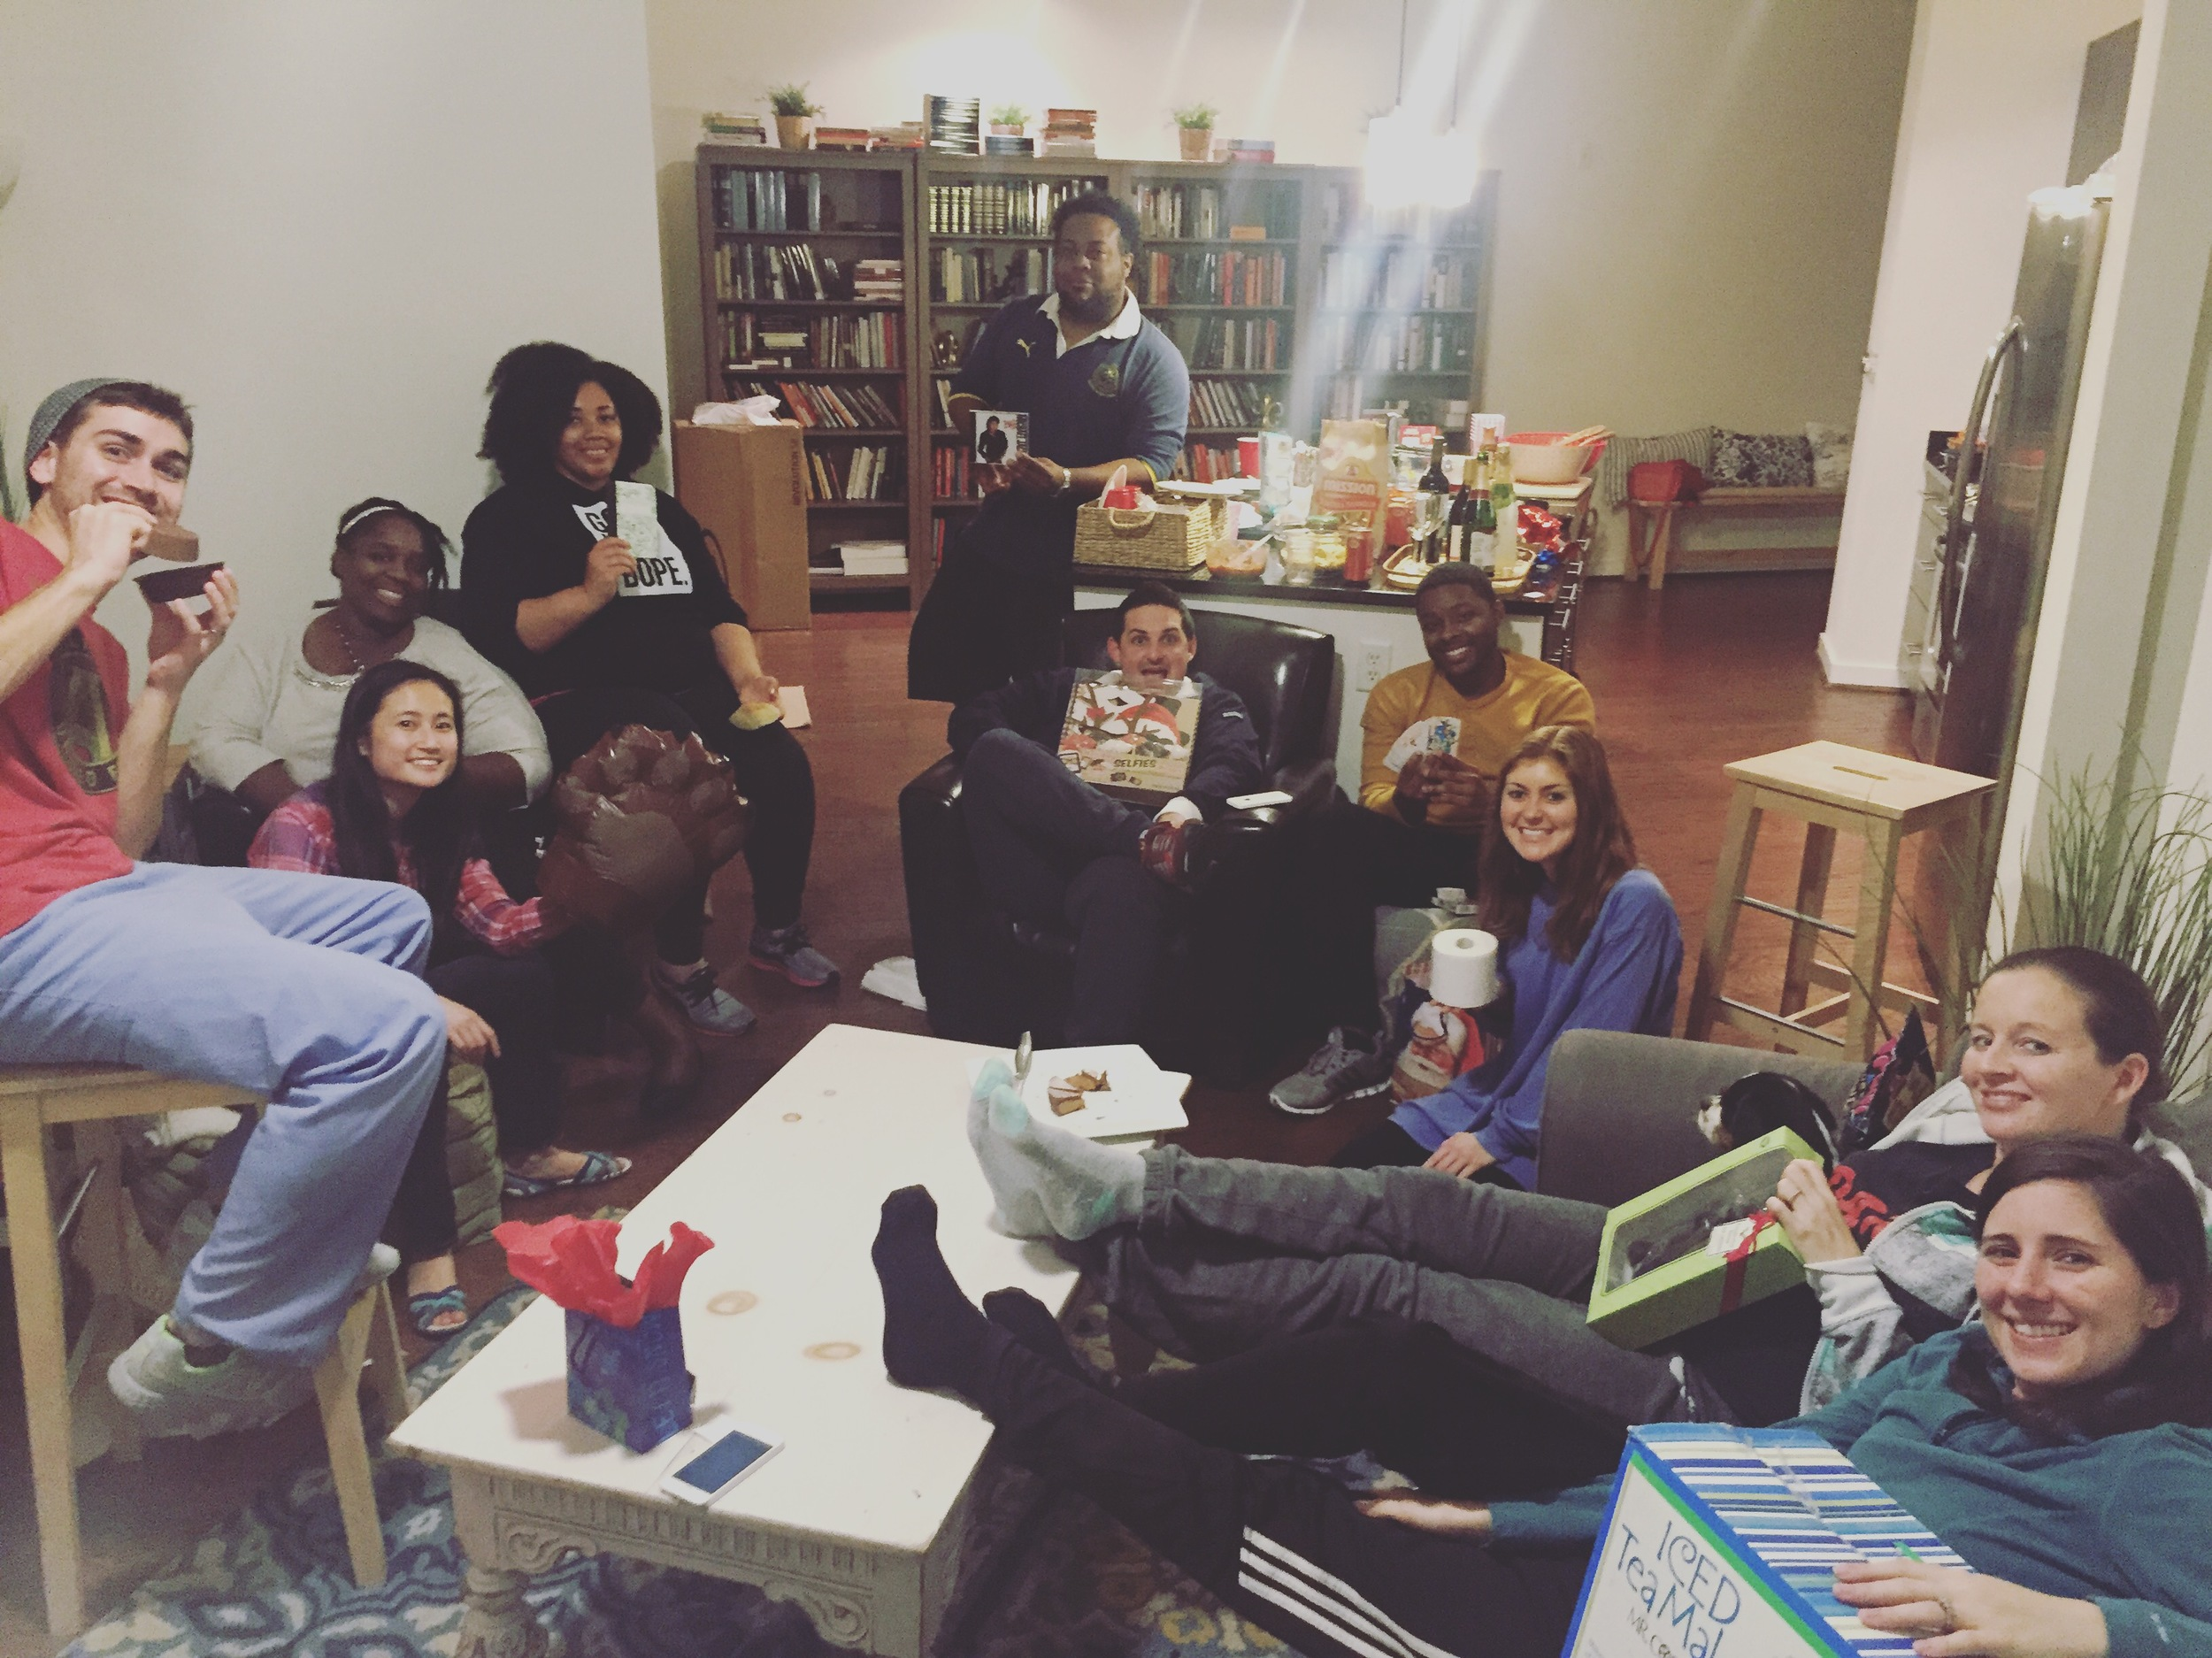 Some people from True North Community Church gathering in a home